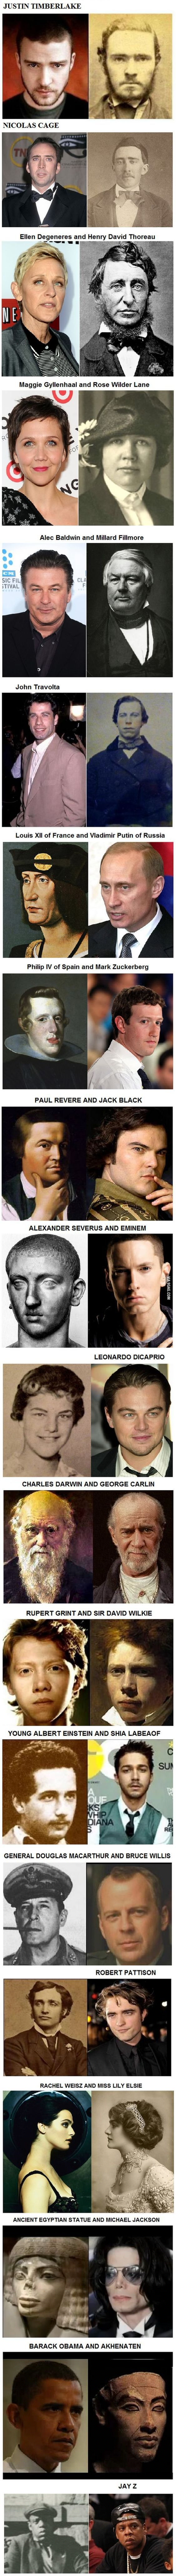 20 Celebrities And Their Historical Doppelgangers